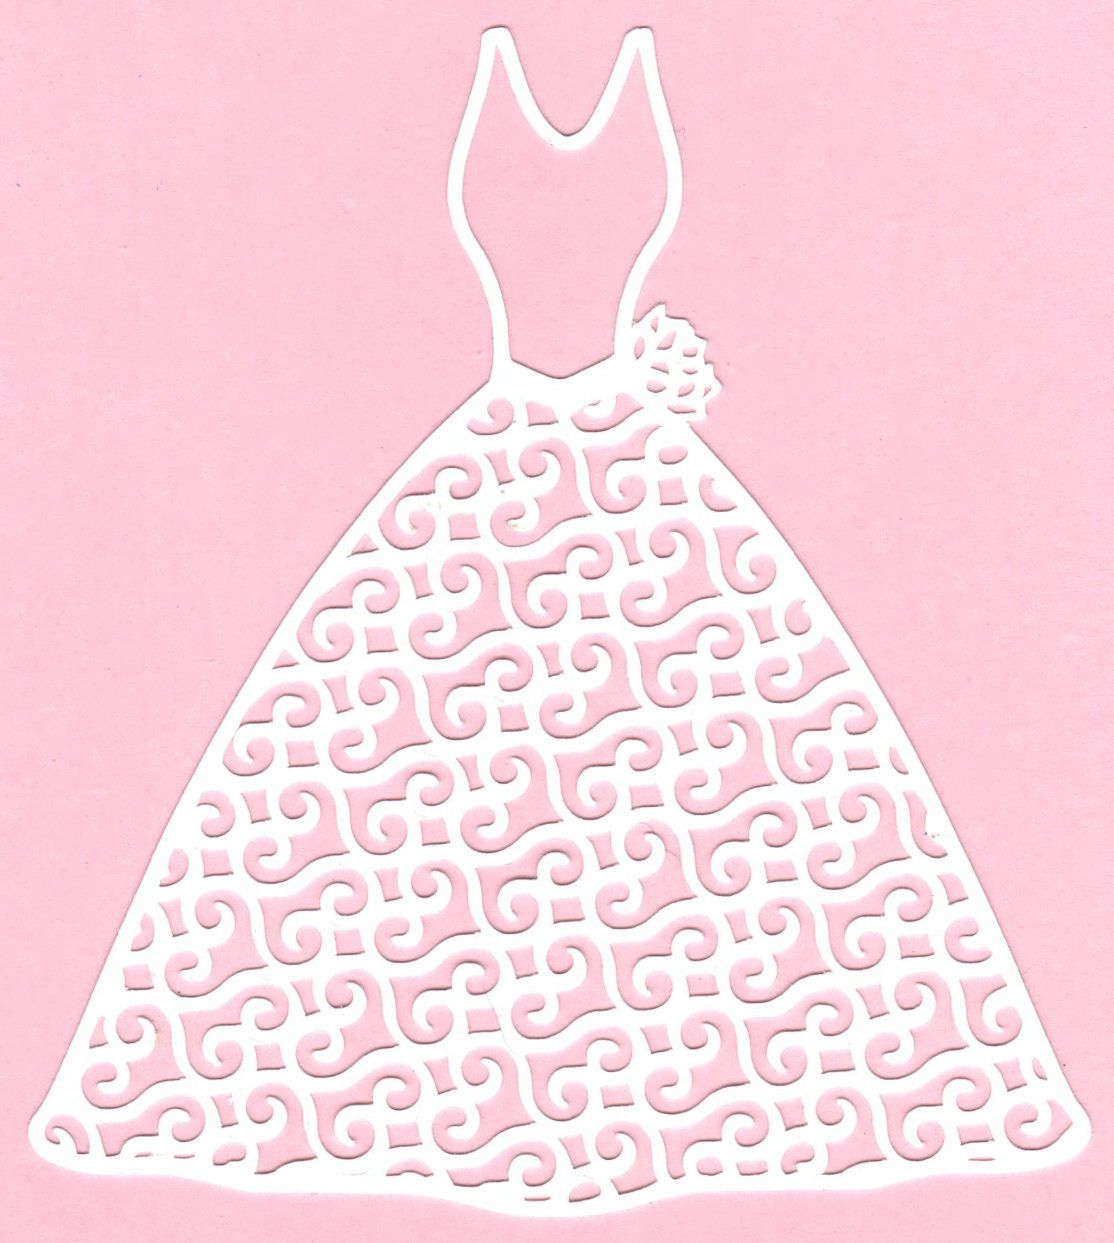 Wedding Dress Electronic cutter file. Perfect for bridal shower and wedding greeting cards or invitations.